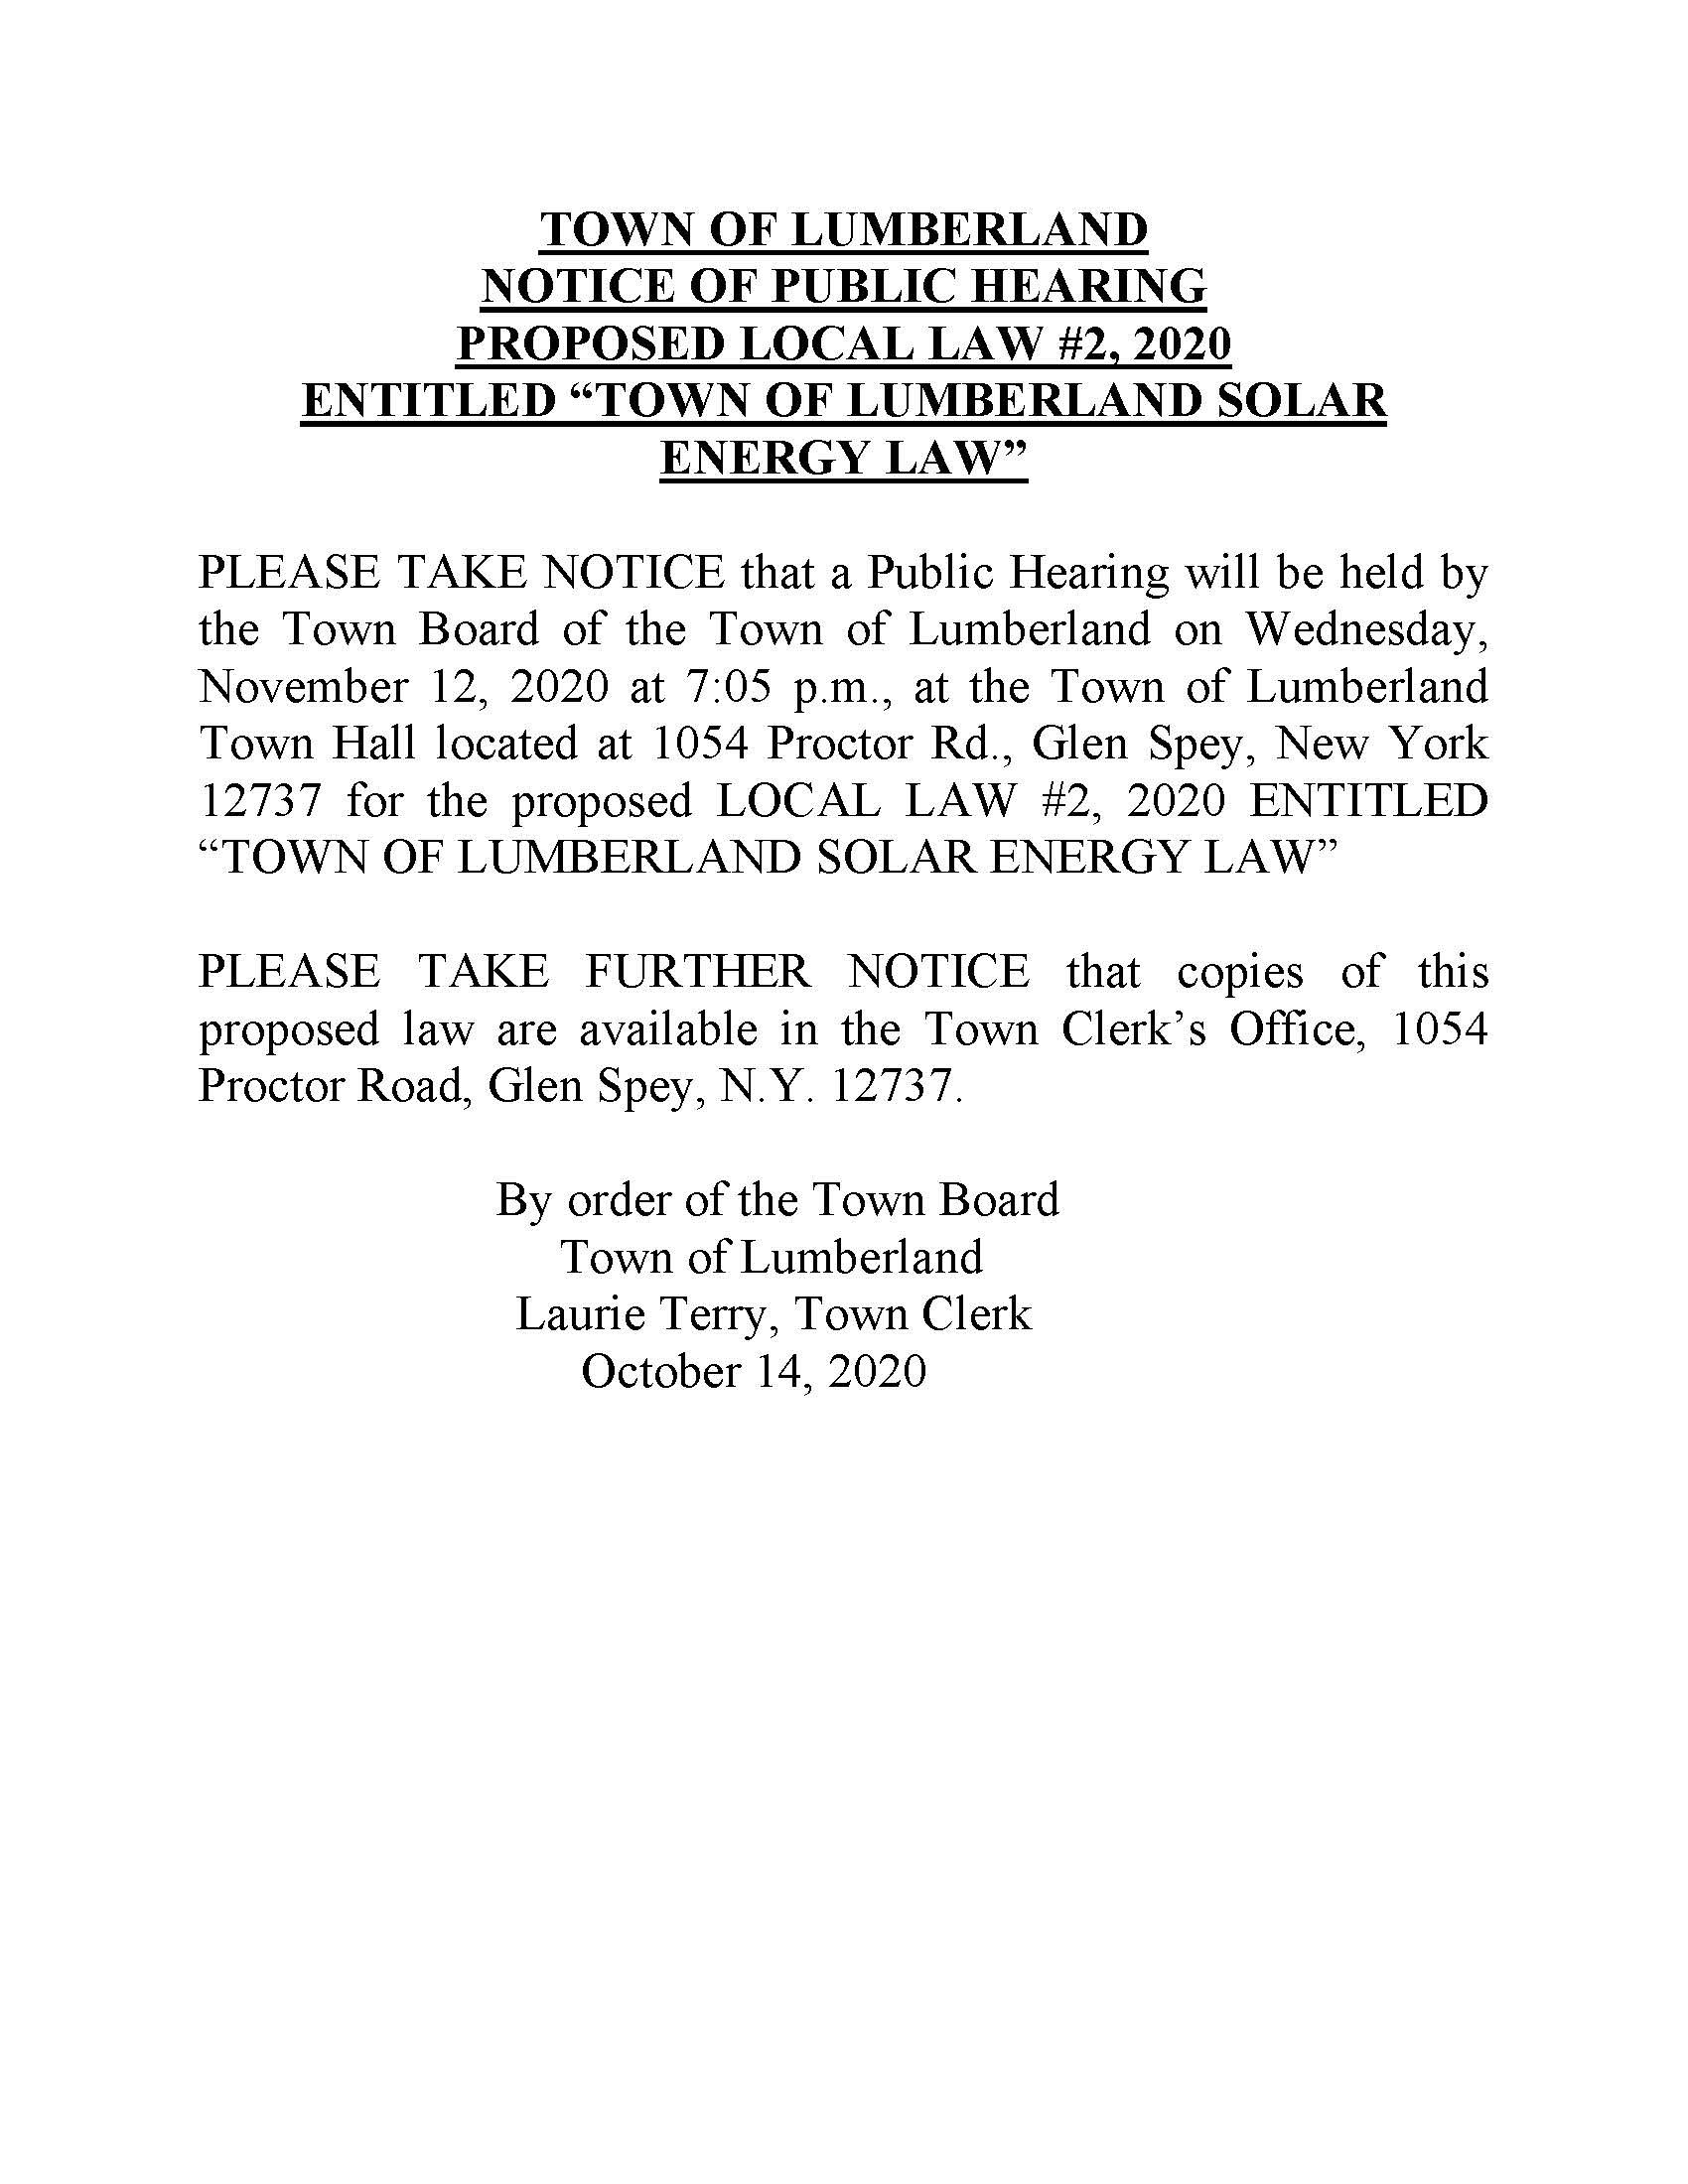 Legal Notice Public Hearing Local Law 2 of 2020